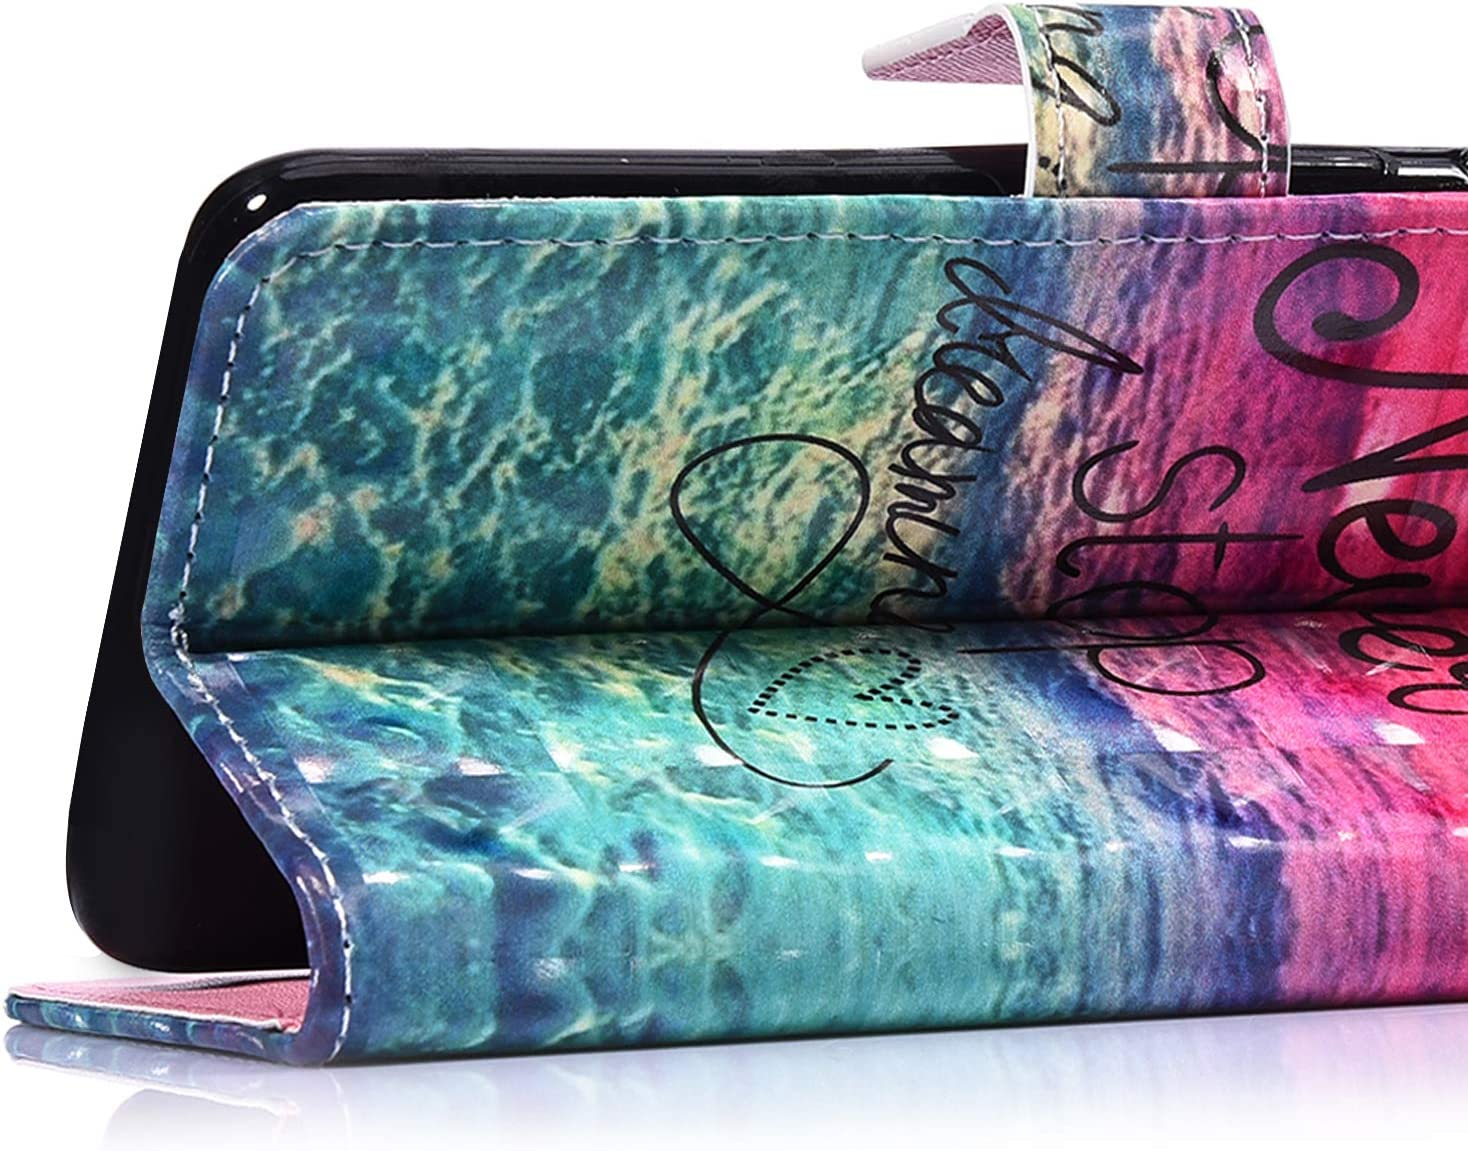 Herbests Compatible with Samsung Galaxy A9 2018 Case Luxury Bling Shiny Colorful Pattern Wallet PU Leather Flip Cover Shockproof Magnetic Protective Stand Case Cover,Blue Feather Mandala